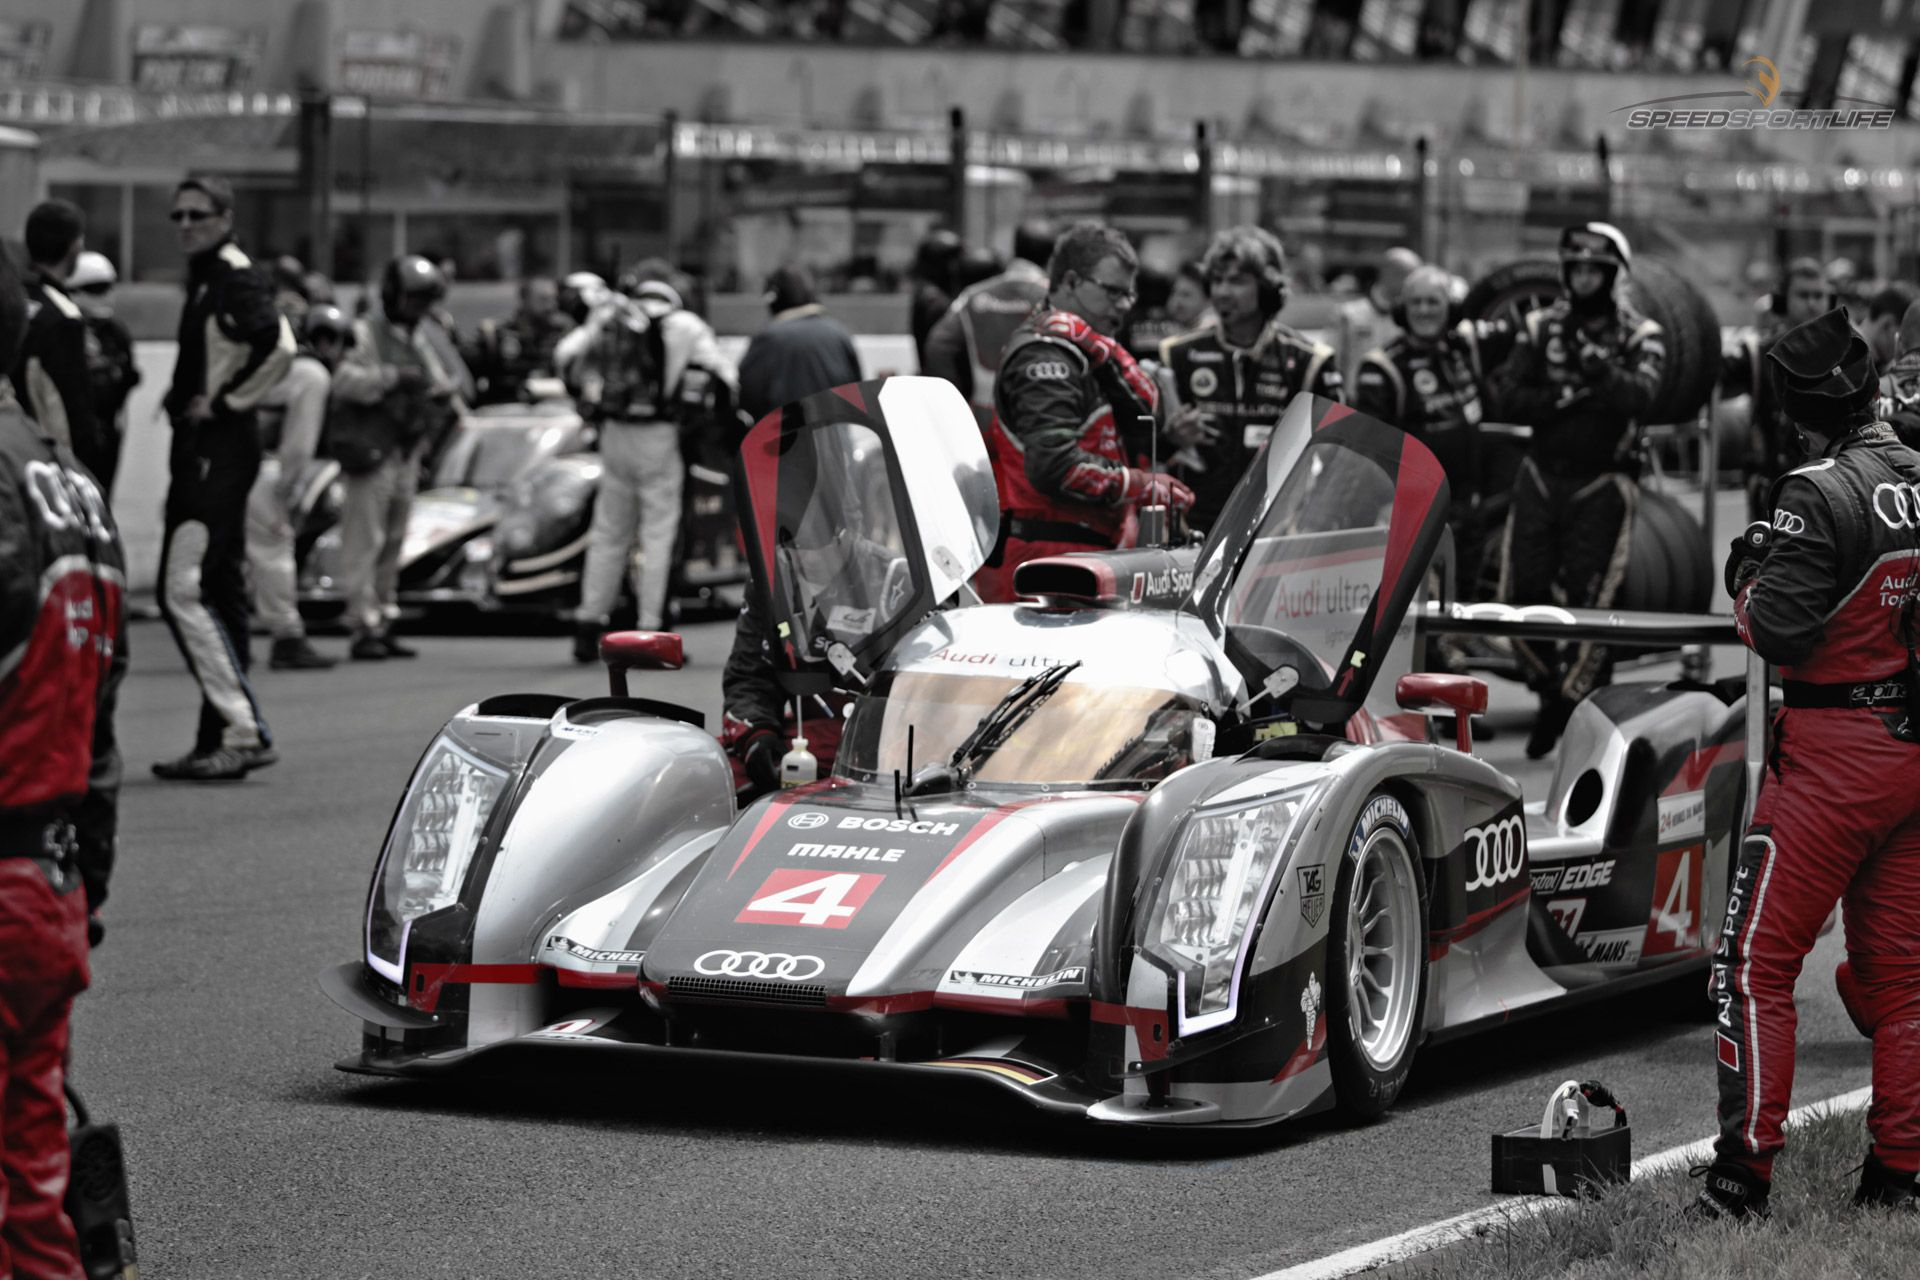 S:S:L Wallpaper: On the Grid at Le Mans